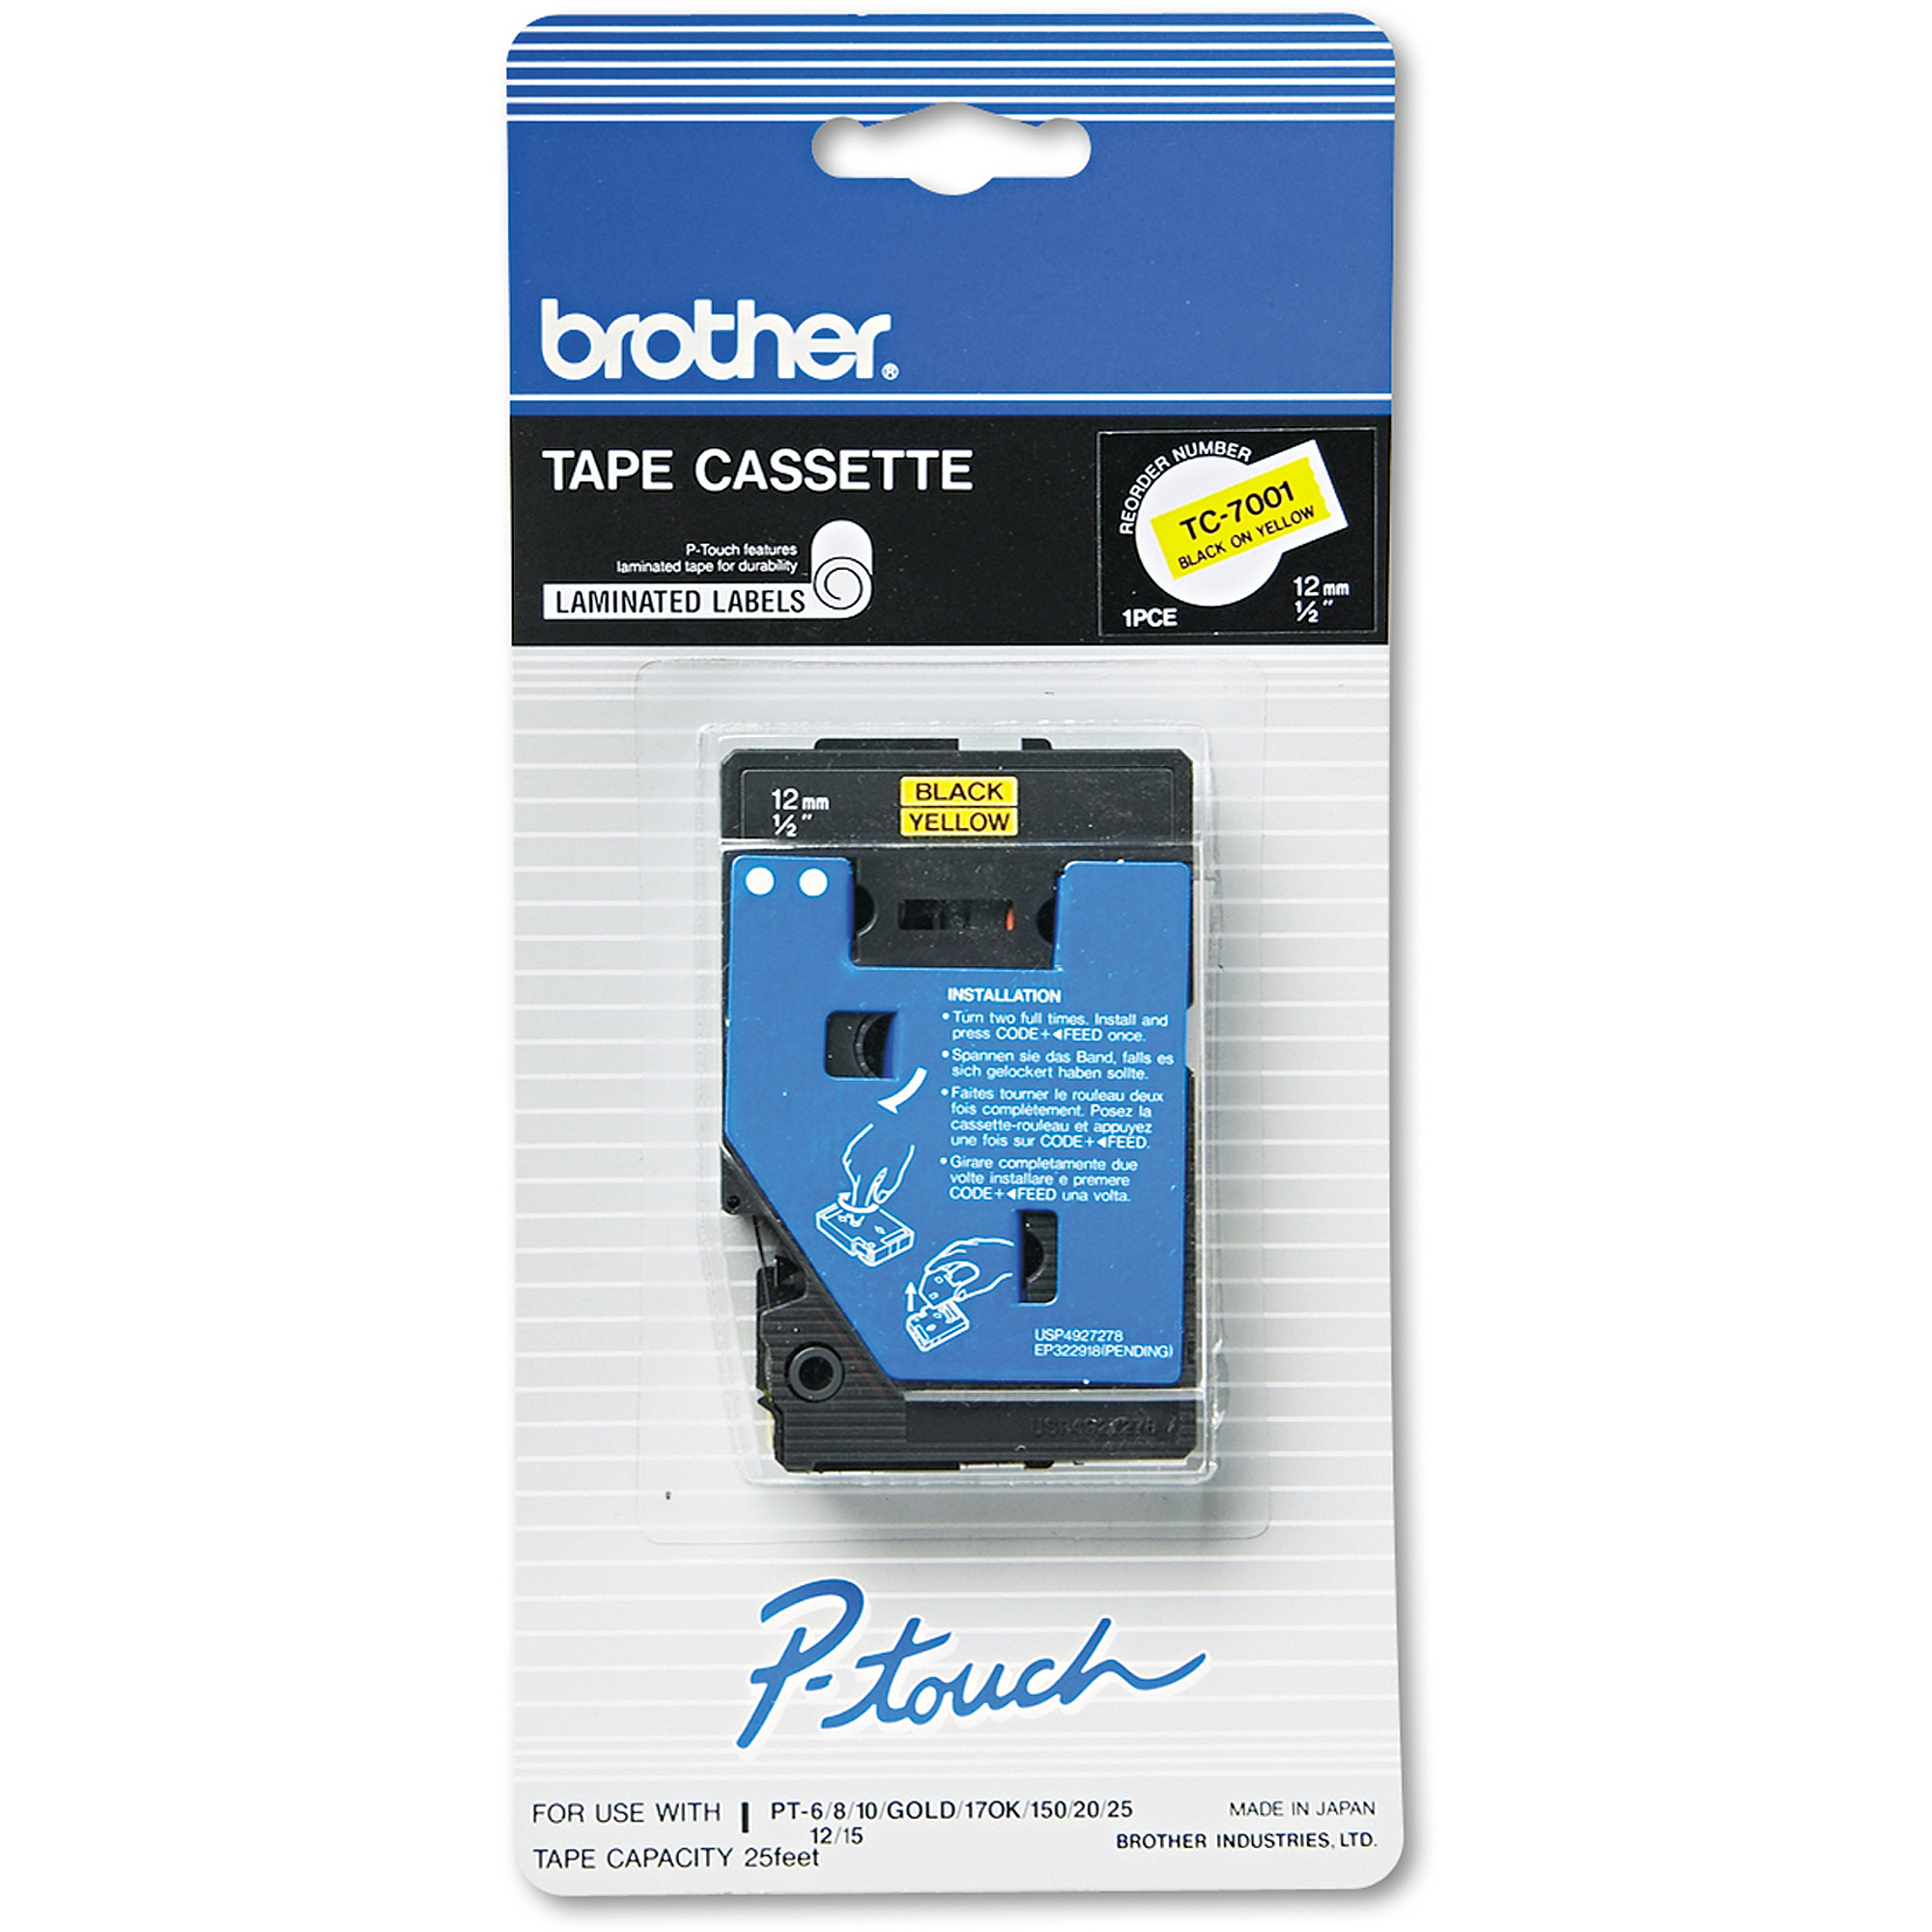 Brother P-Touch TC Tape Cartridge for P-Touch Labelers, 1/2w, Black on Yellow